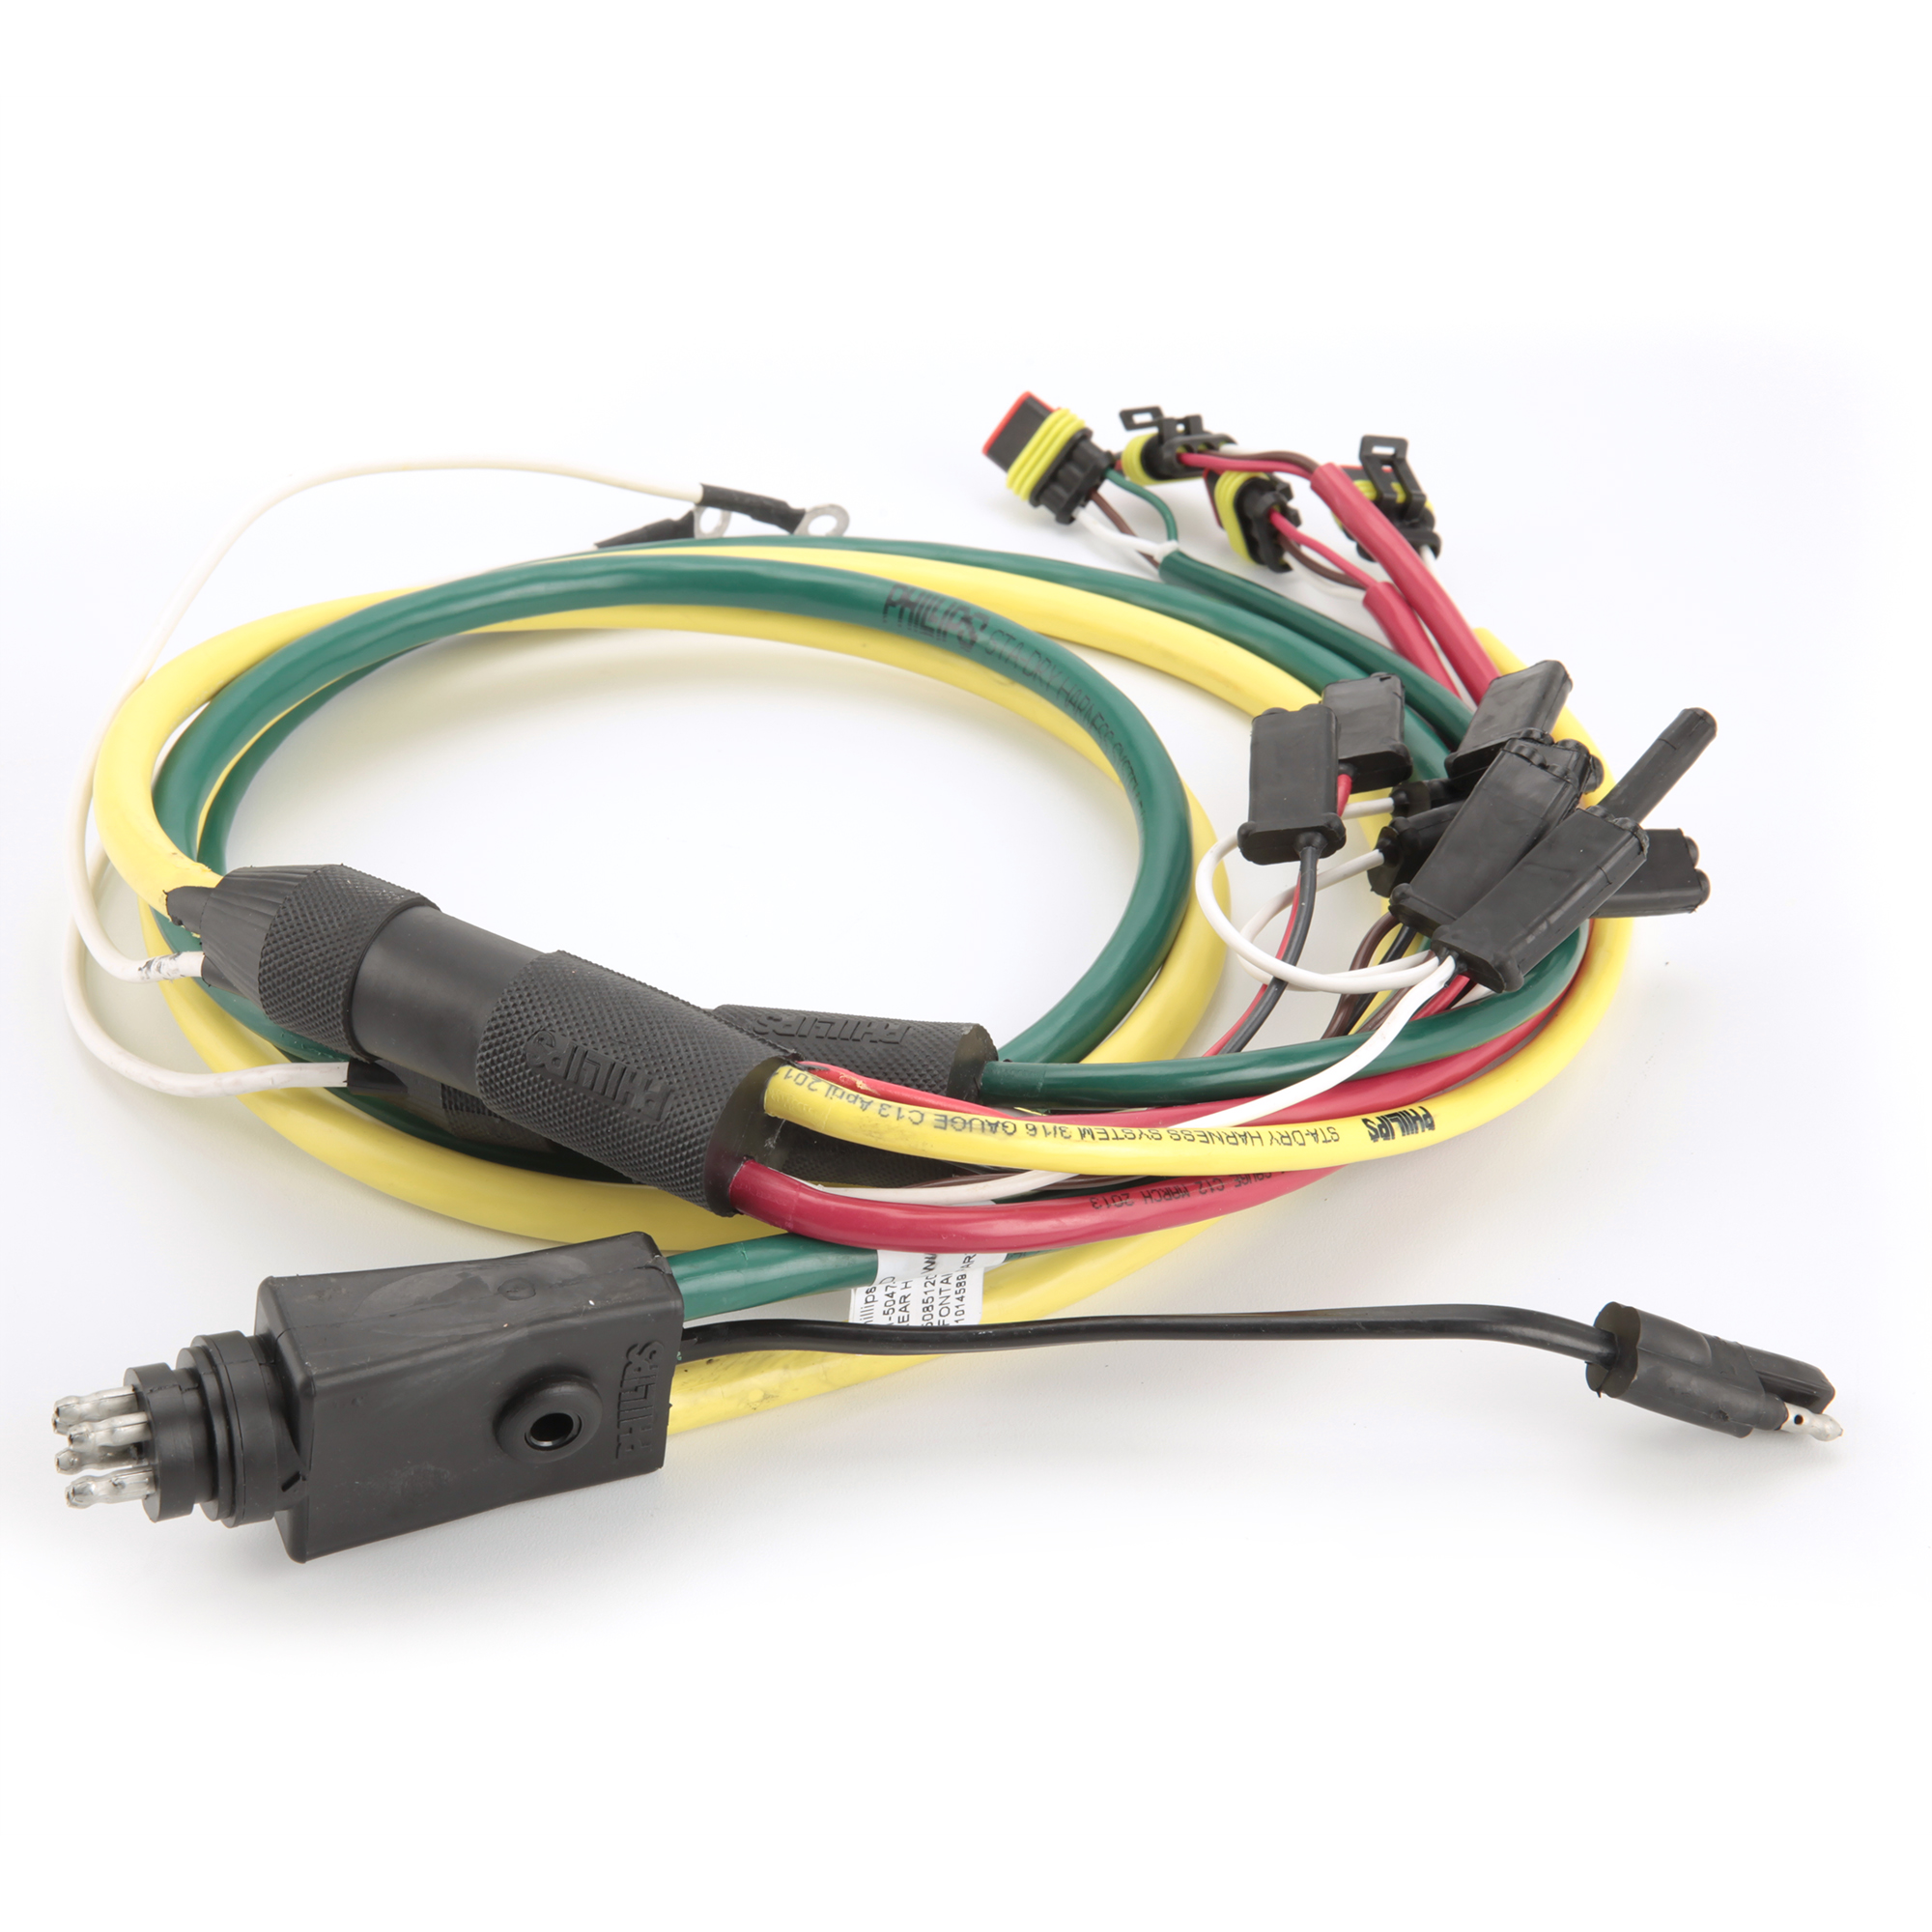 Sealco Wiring Harness For 12 Trailer Blog Diagram Fontaine Flatbed Trailers Flat Bed Drailer Drops Lucas